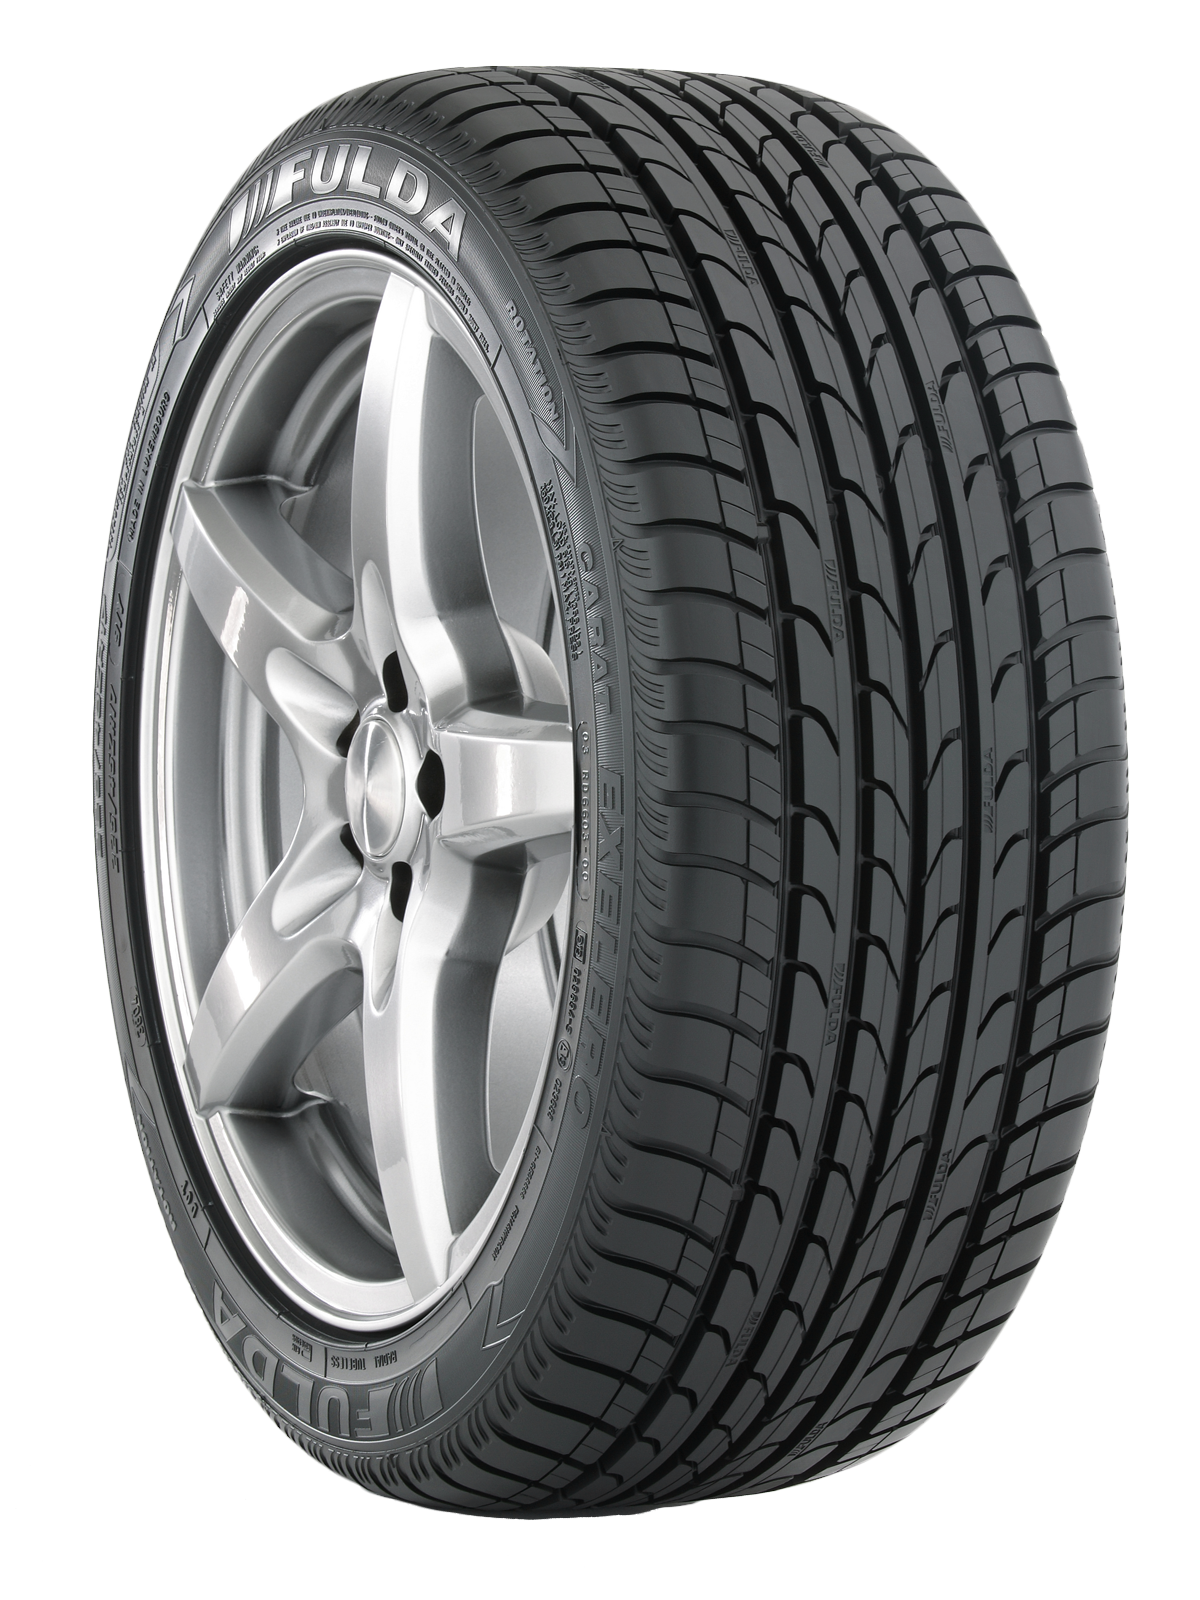 PNG Tire - 58532